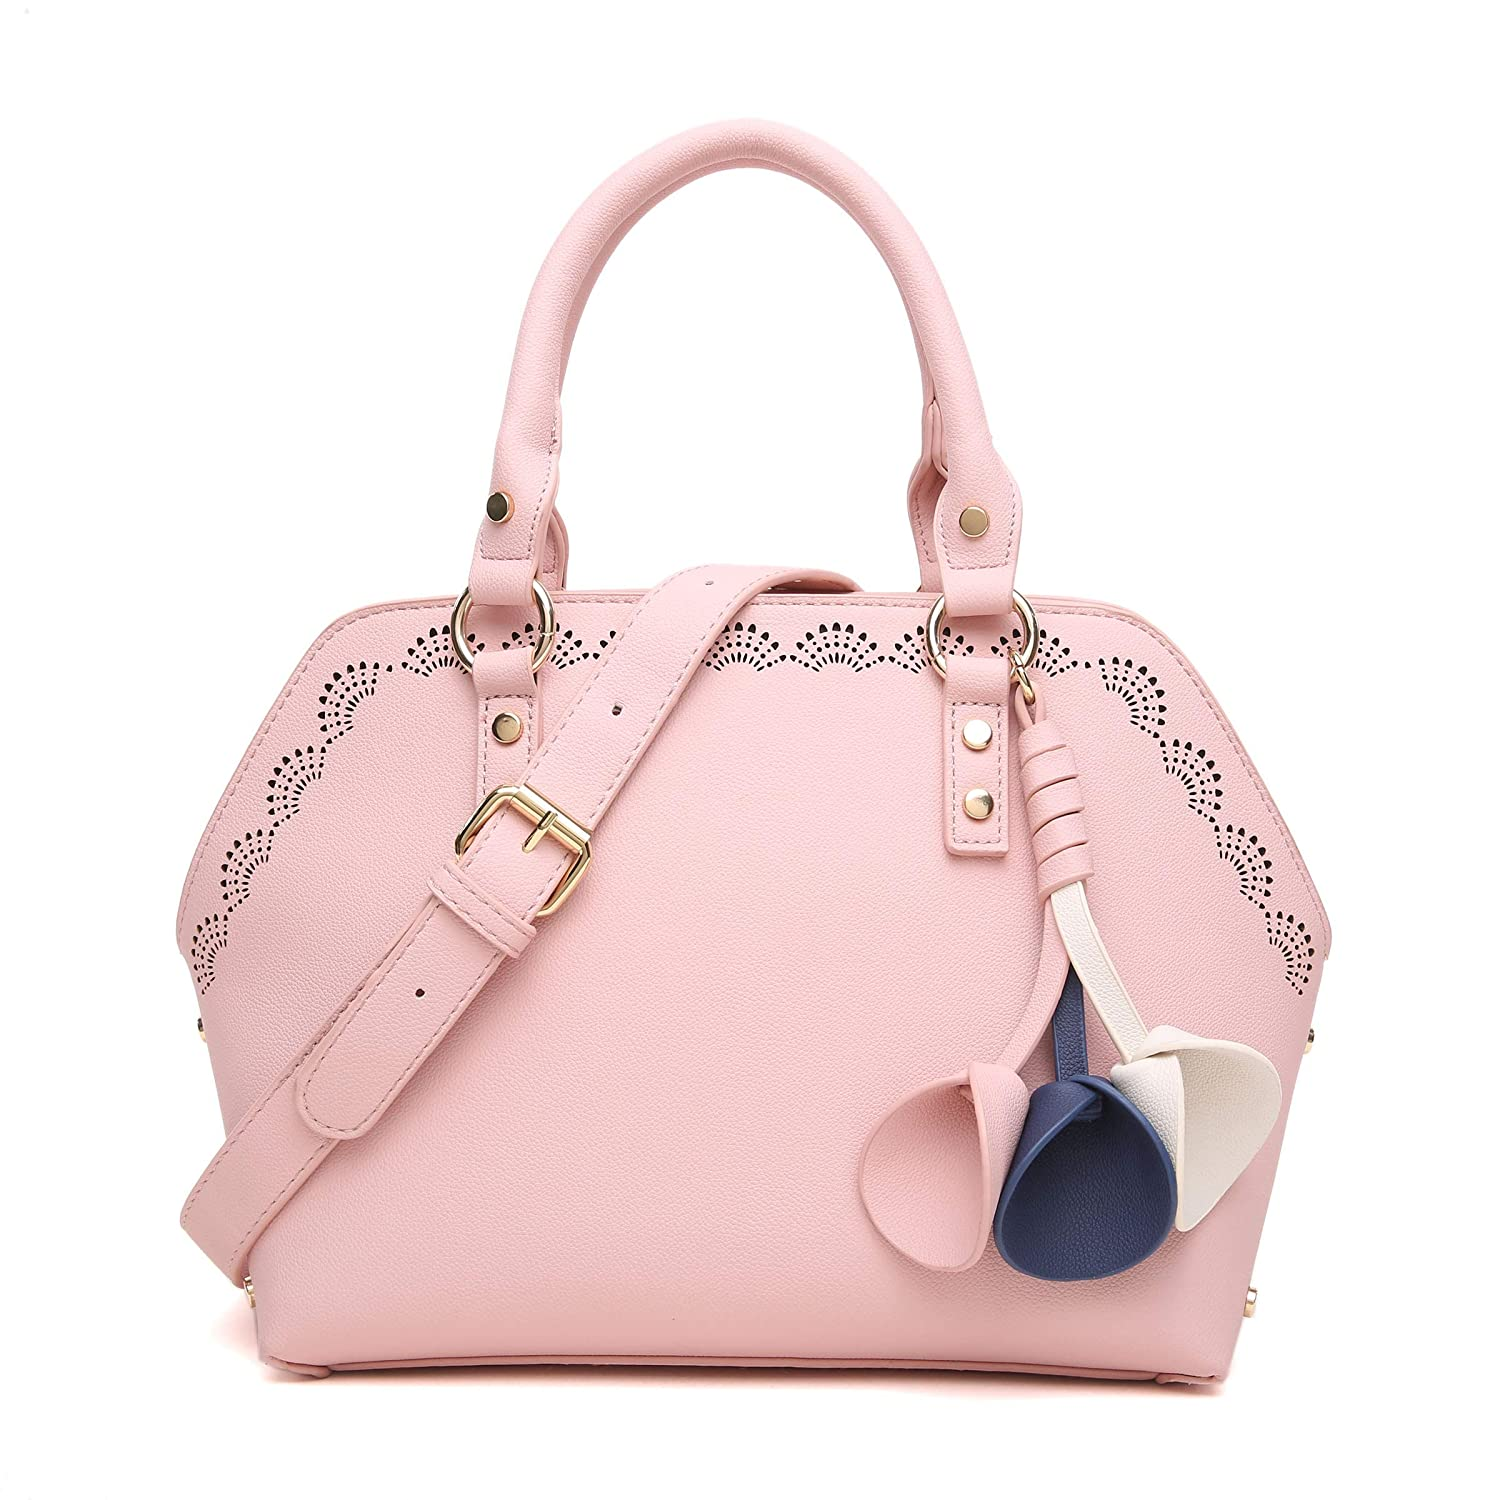 37e9aff84a Aitbags Purses and Handbags for Women Top Handle Satchel Hollow Out Large Tote  with Shoulder Strap Pink  Handbags  Amazon.com